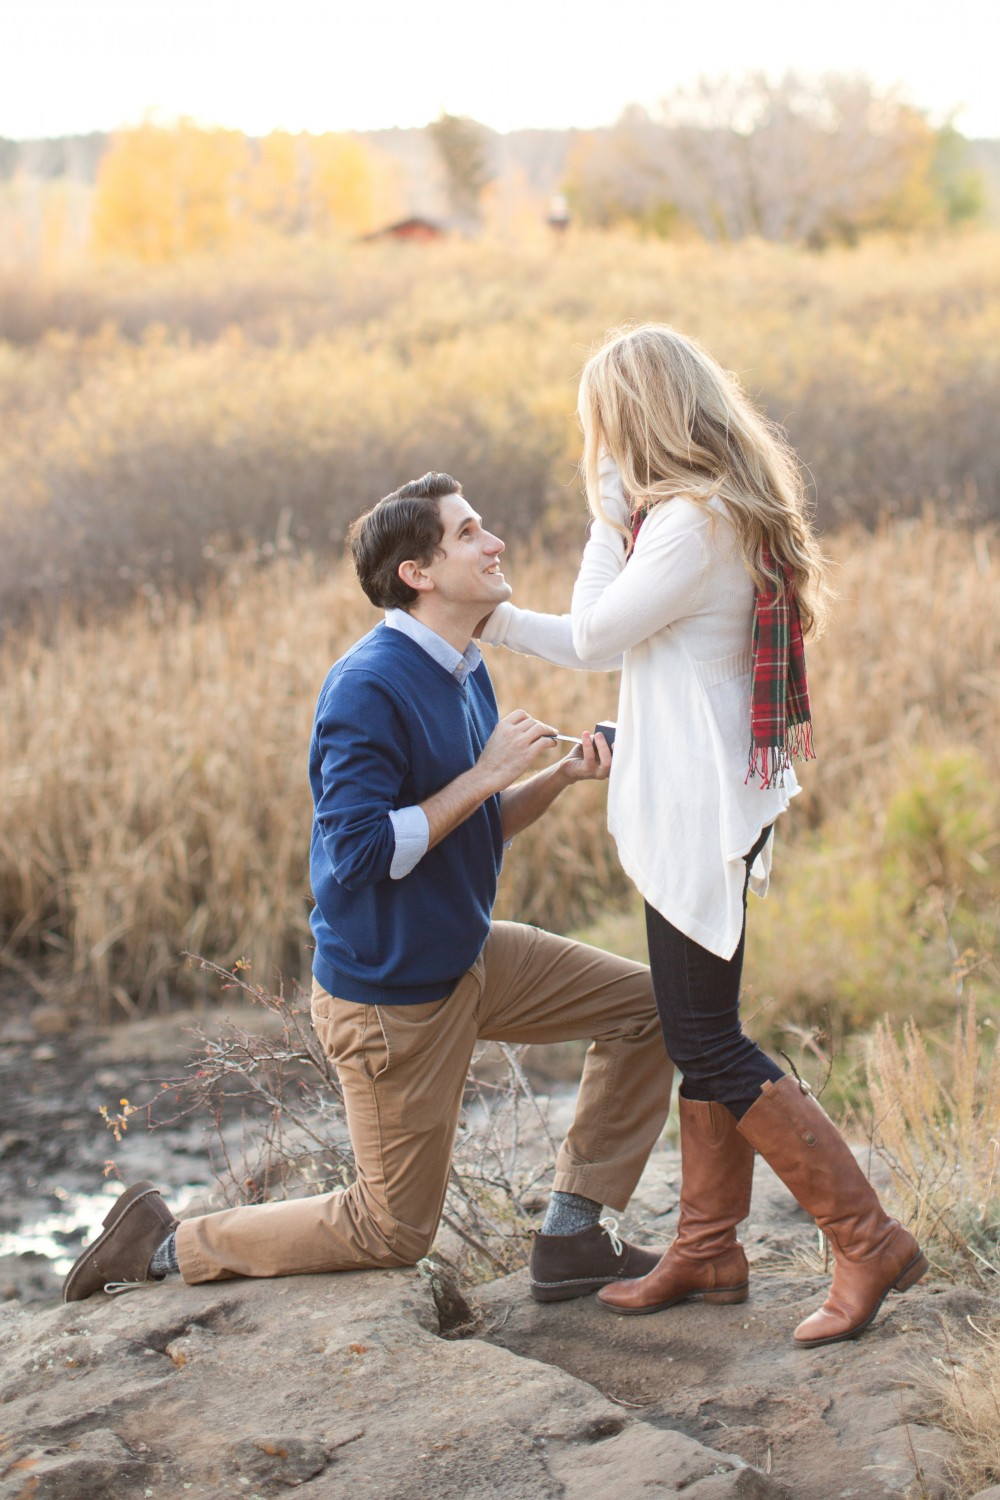 Surprise Proposal in the Woods (5)